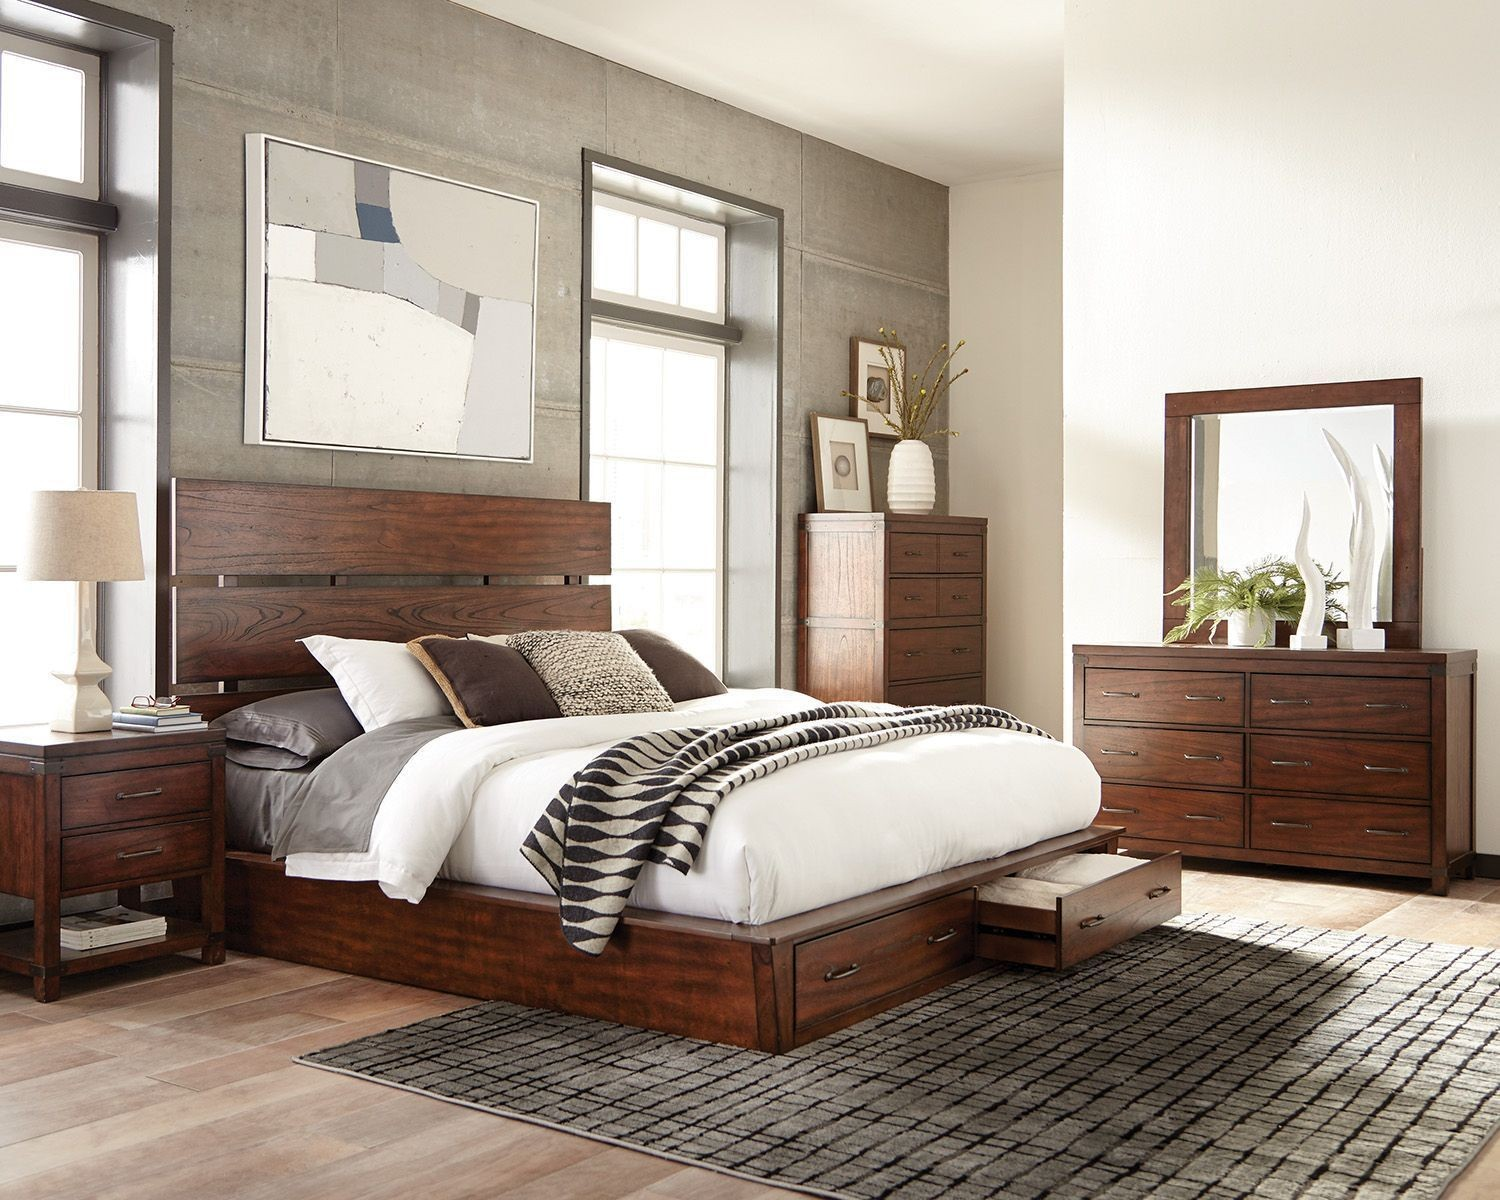 Superieur Coaster® Artesia By Scott Living™ 4 Piece California King Bedroom  Collection 204470KW